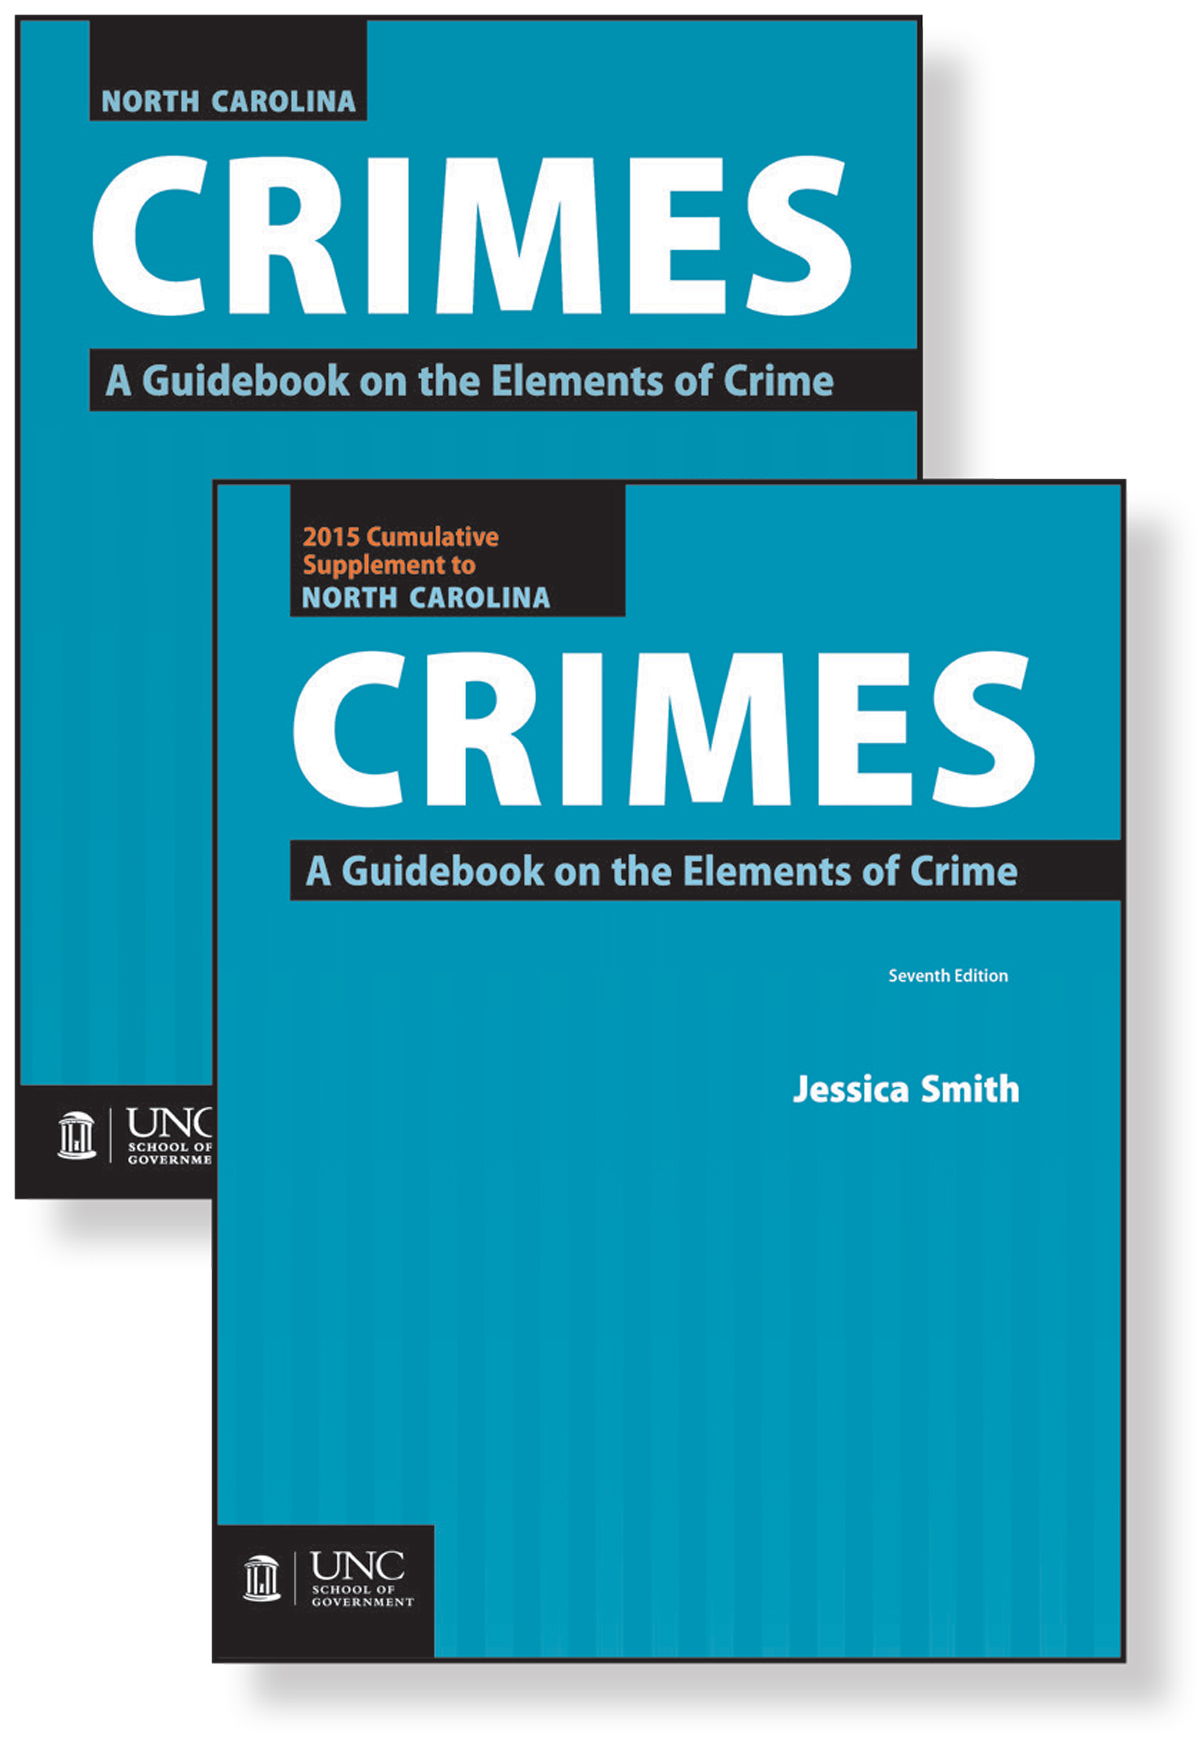 Package of North Carolina Crimes: A Guidebook on the Elements of Crime, Seventh Edition, 2012, and 2015 Cumulative Supplement